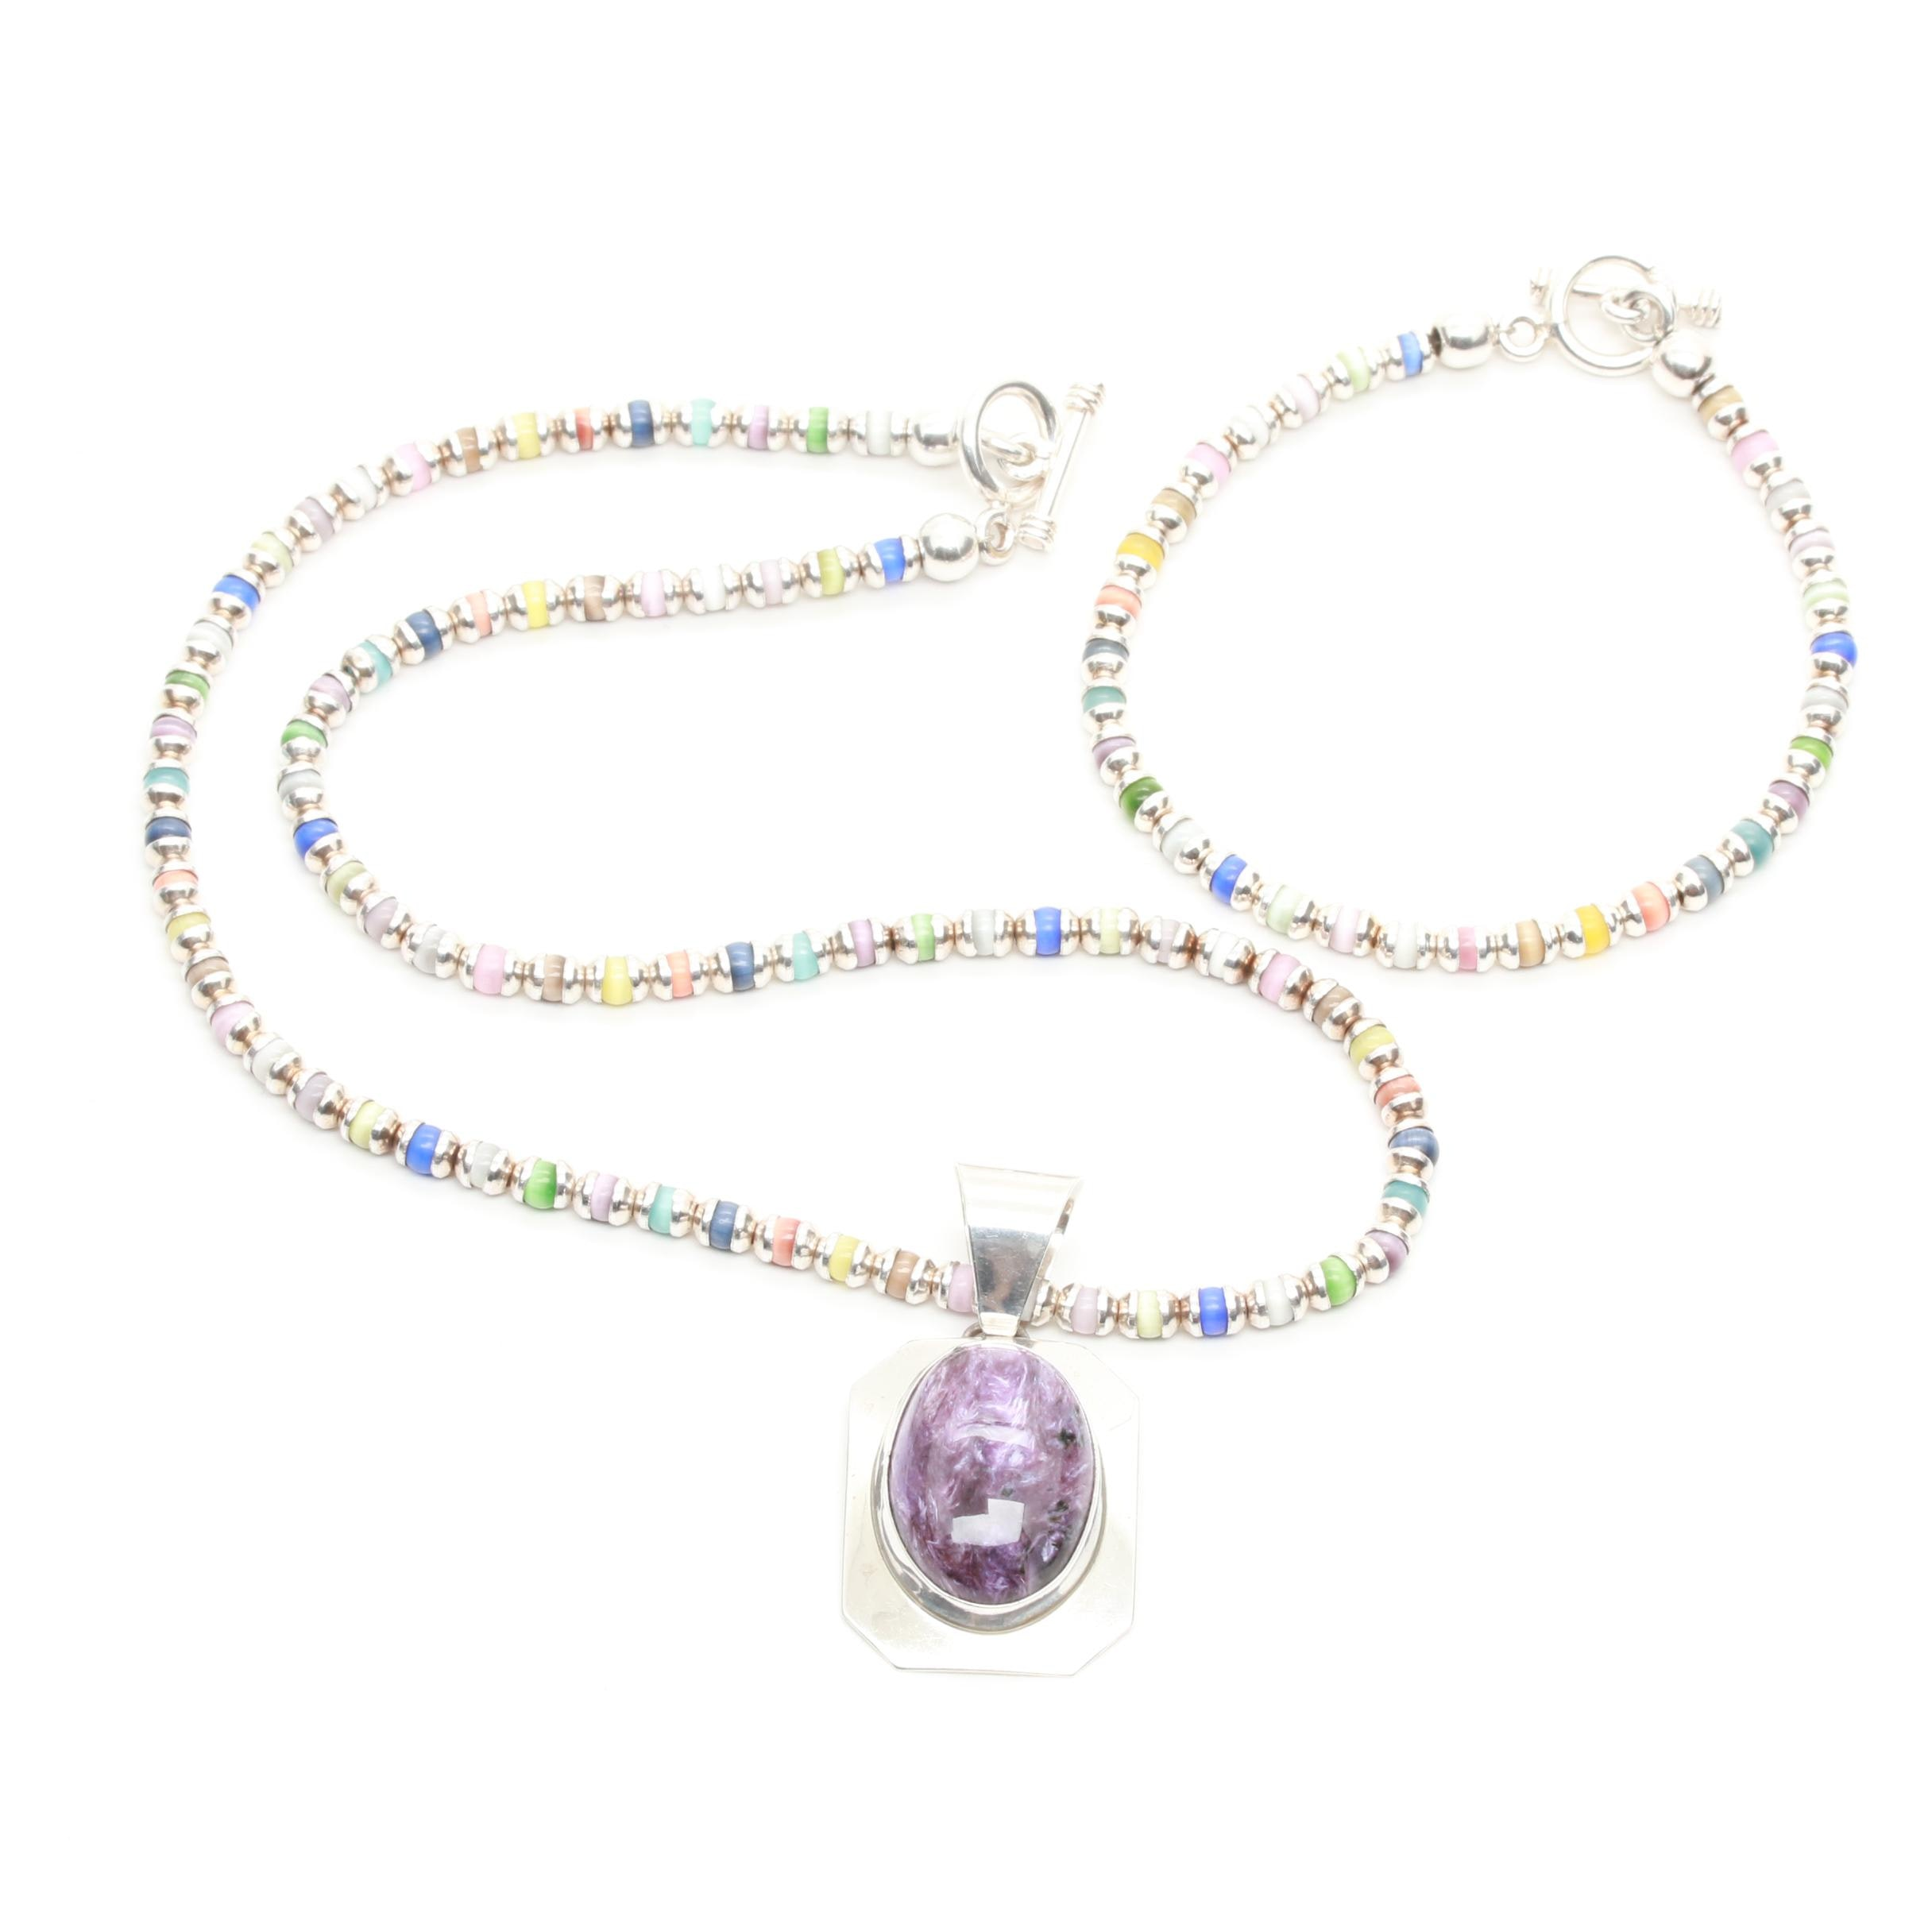 Matching Sterling Silver Glass and Charoite Necklace and Bracelet